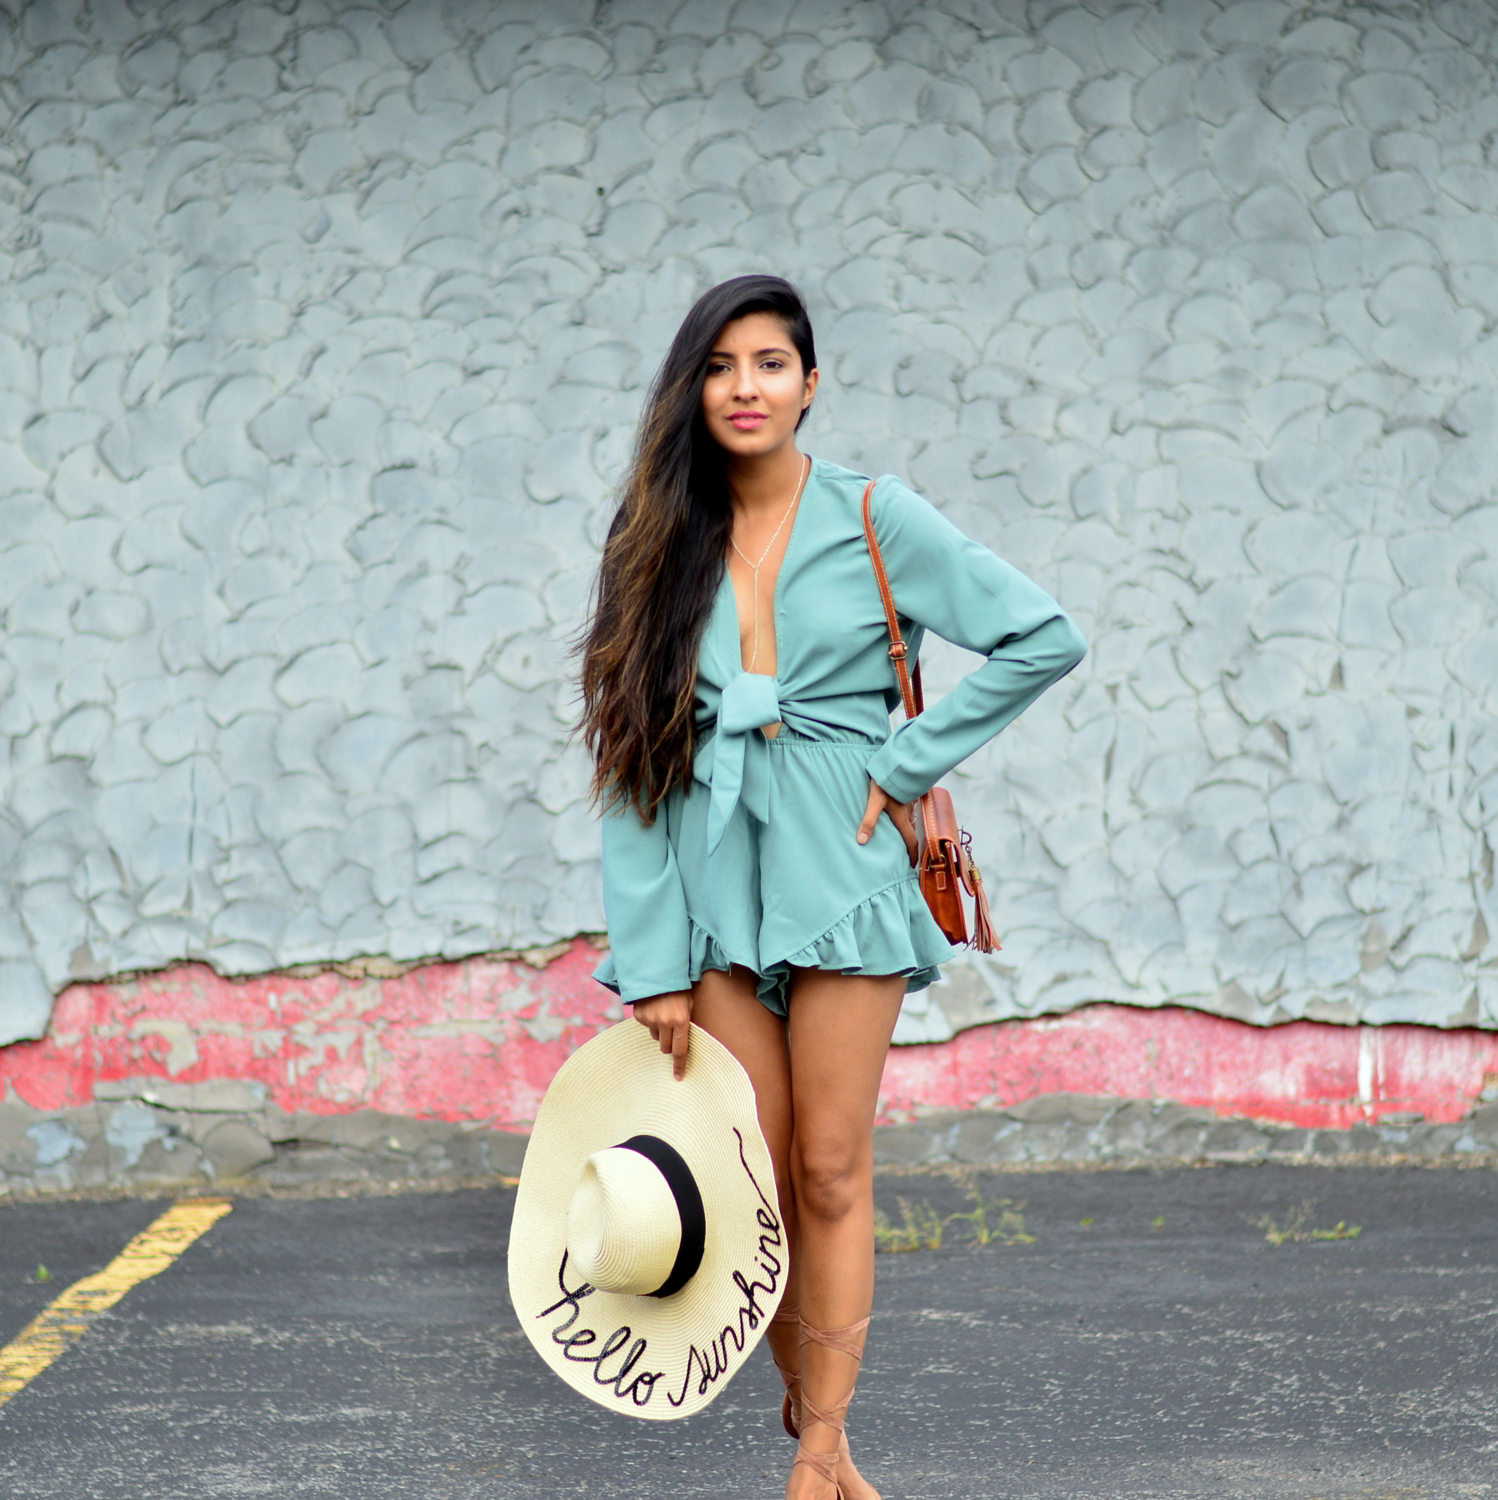 tie-front-romper-playsuit-summer-outfit-blogger-style 7